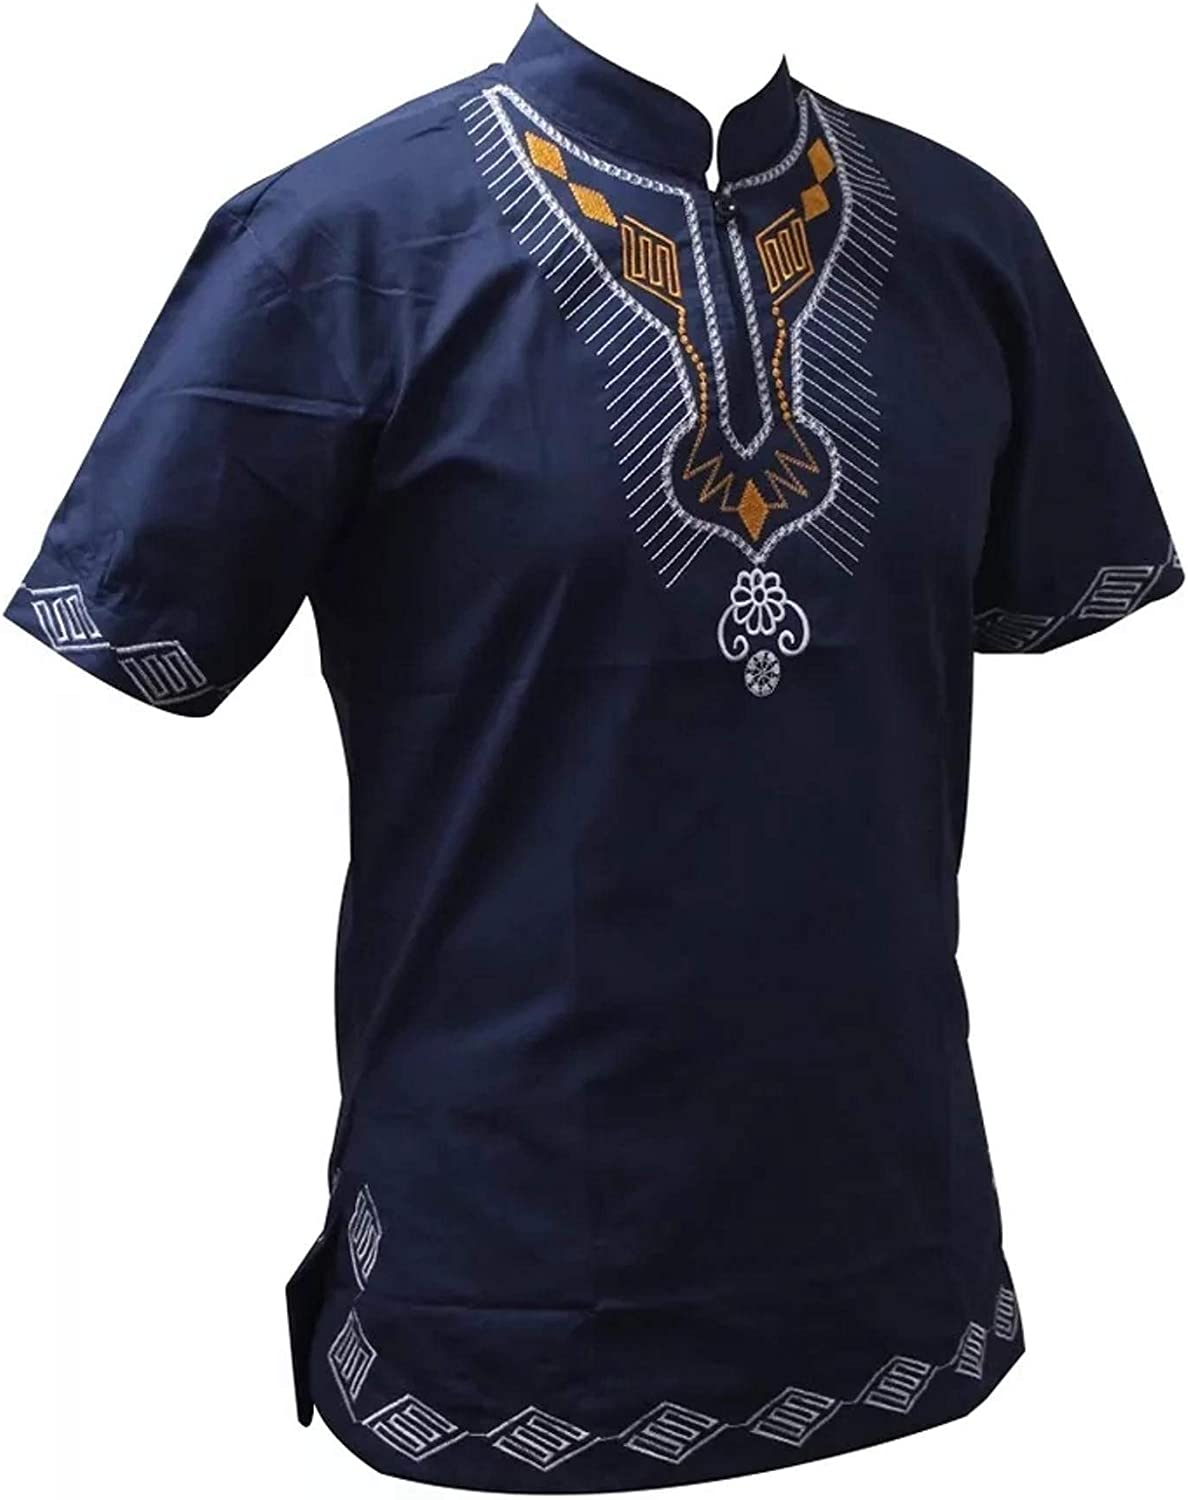 Welhore Fashion Men and Women African Embroidery Short Sleeve Dashiki T-Shirt Traditional Floral Blouse